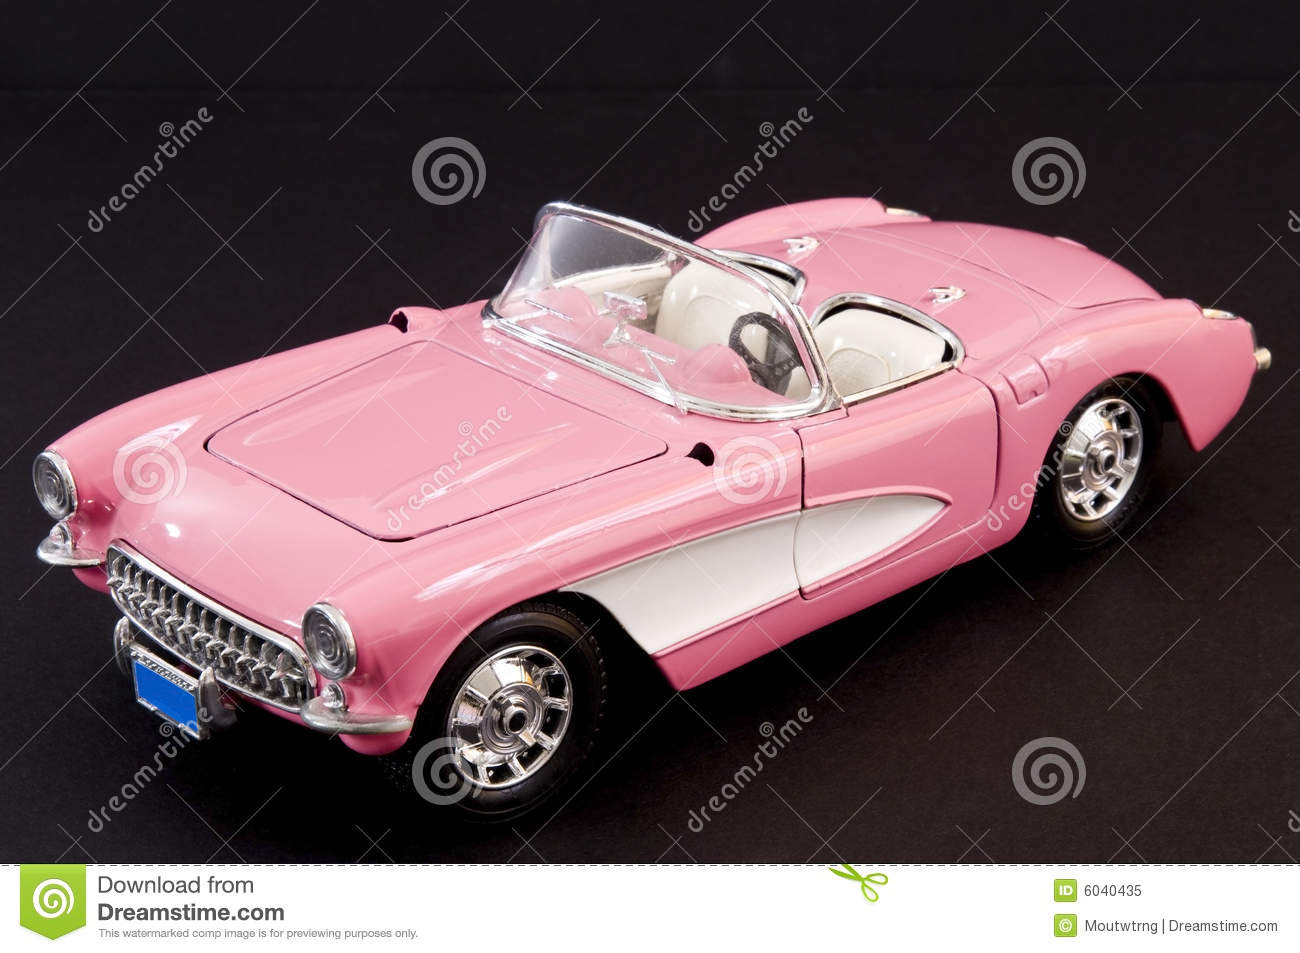 Pink Stylish Classic Sports Car Royalty Free Stock Photo  Image